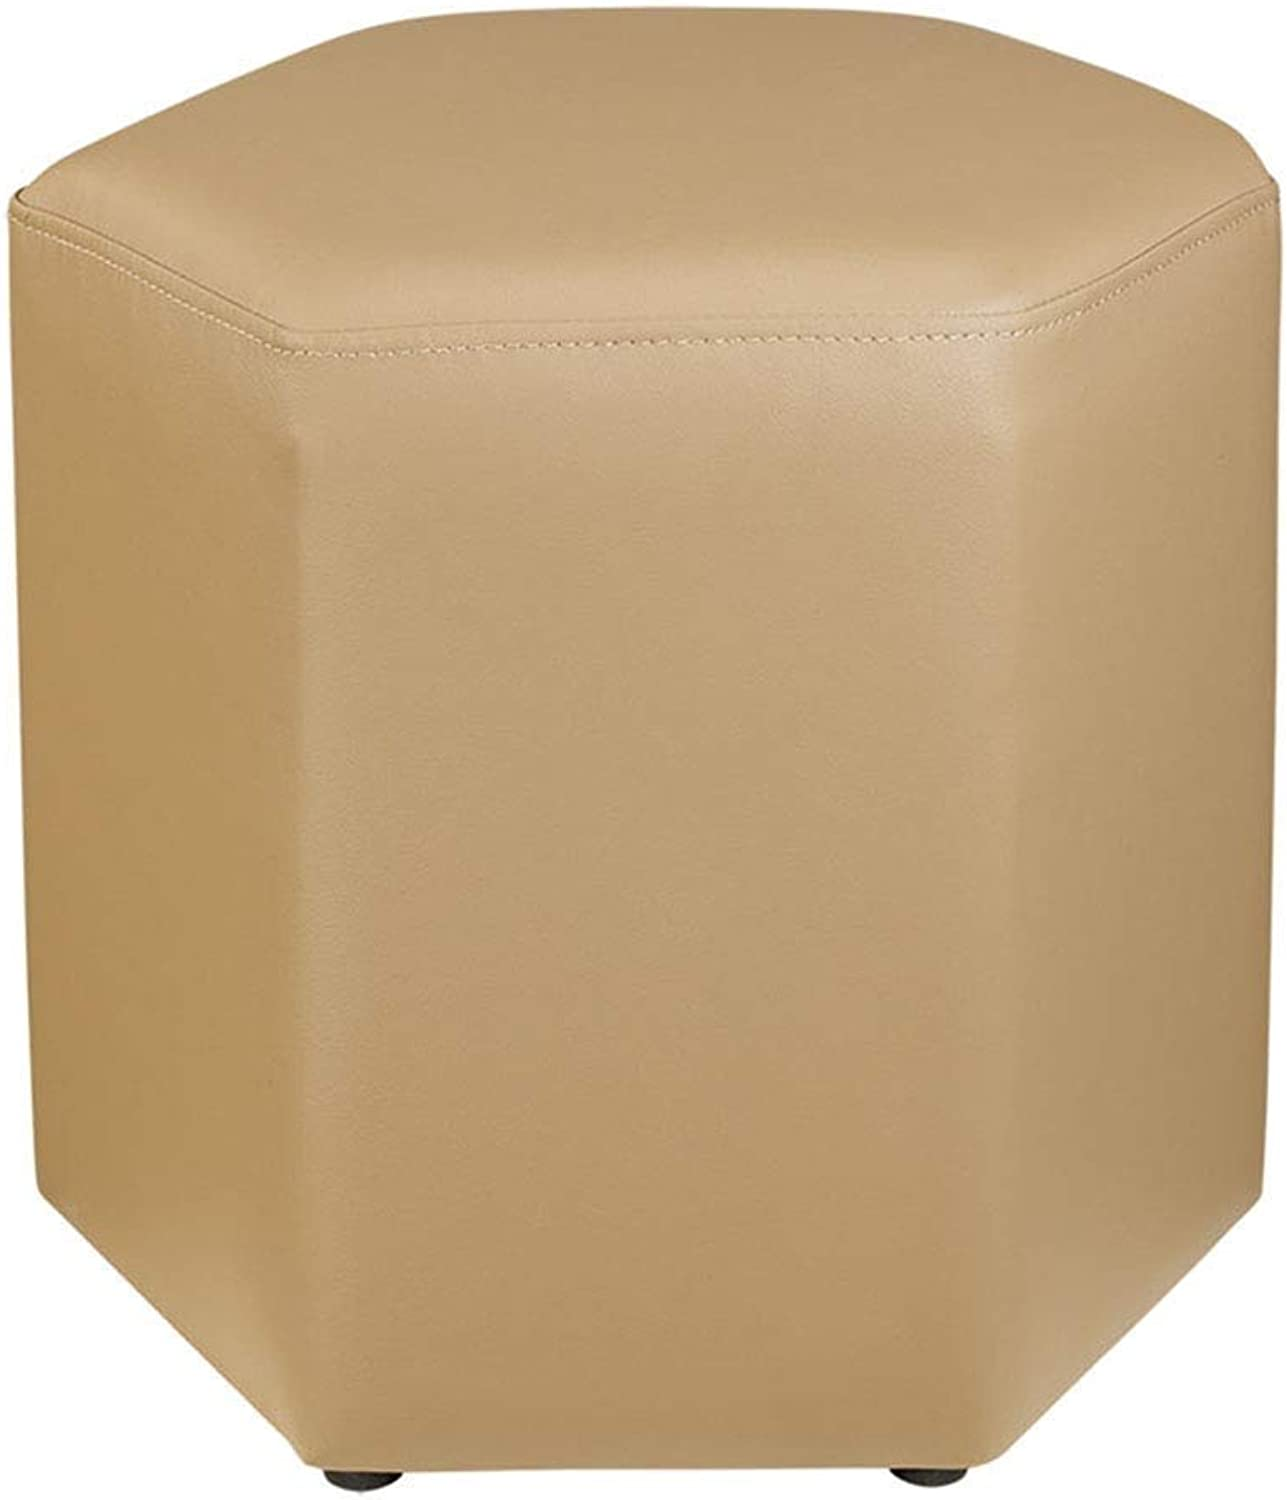 Modern Minimalist Creative Hexagonal PU Leather Sofa Stool for shoes Stool FENPING (color   Beige)